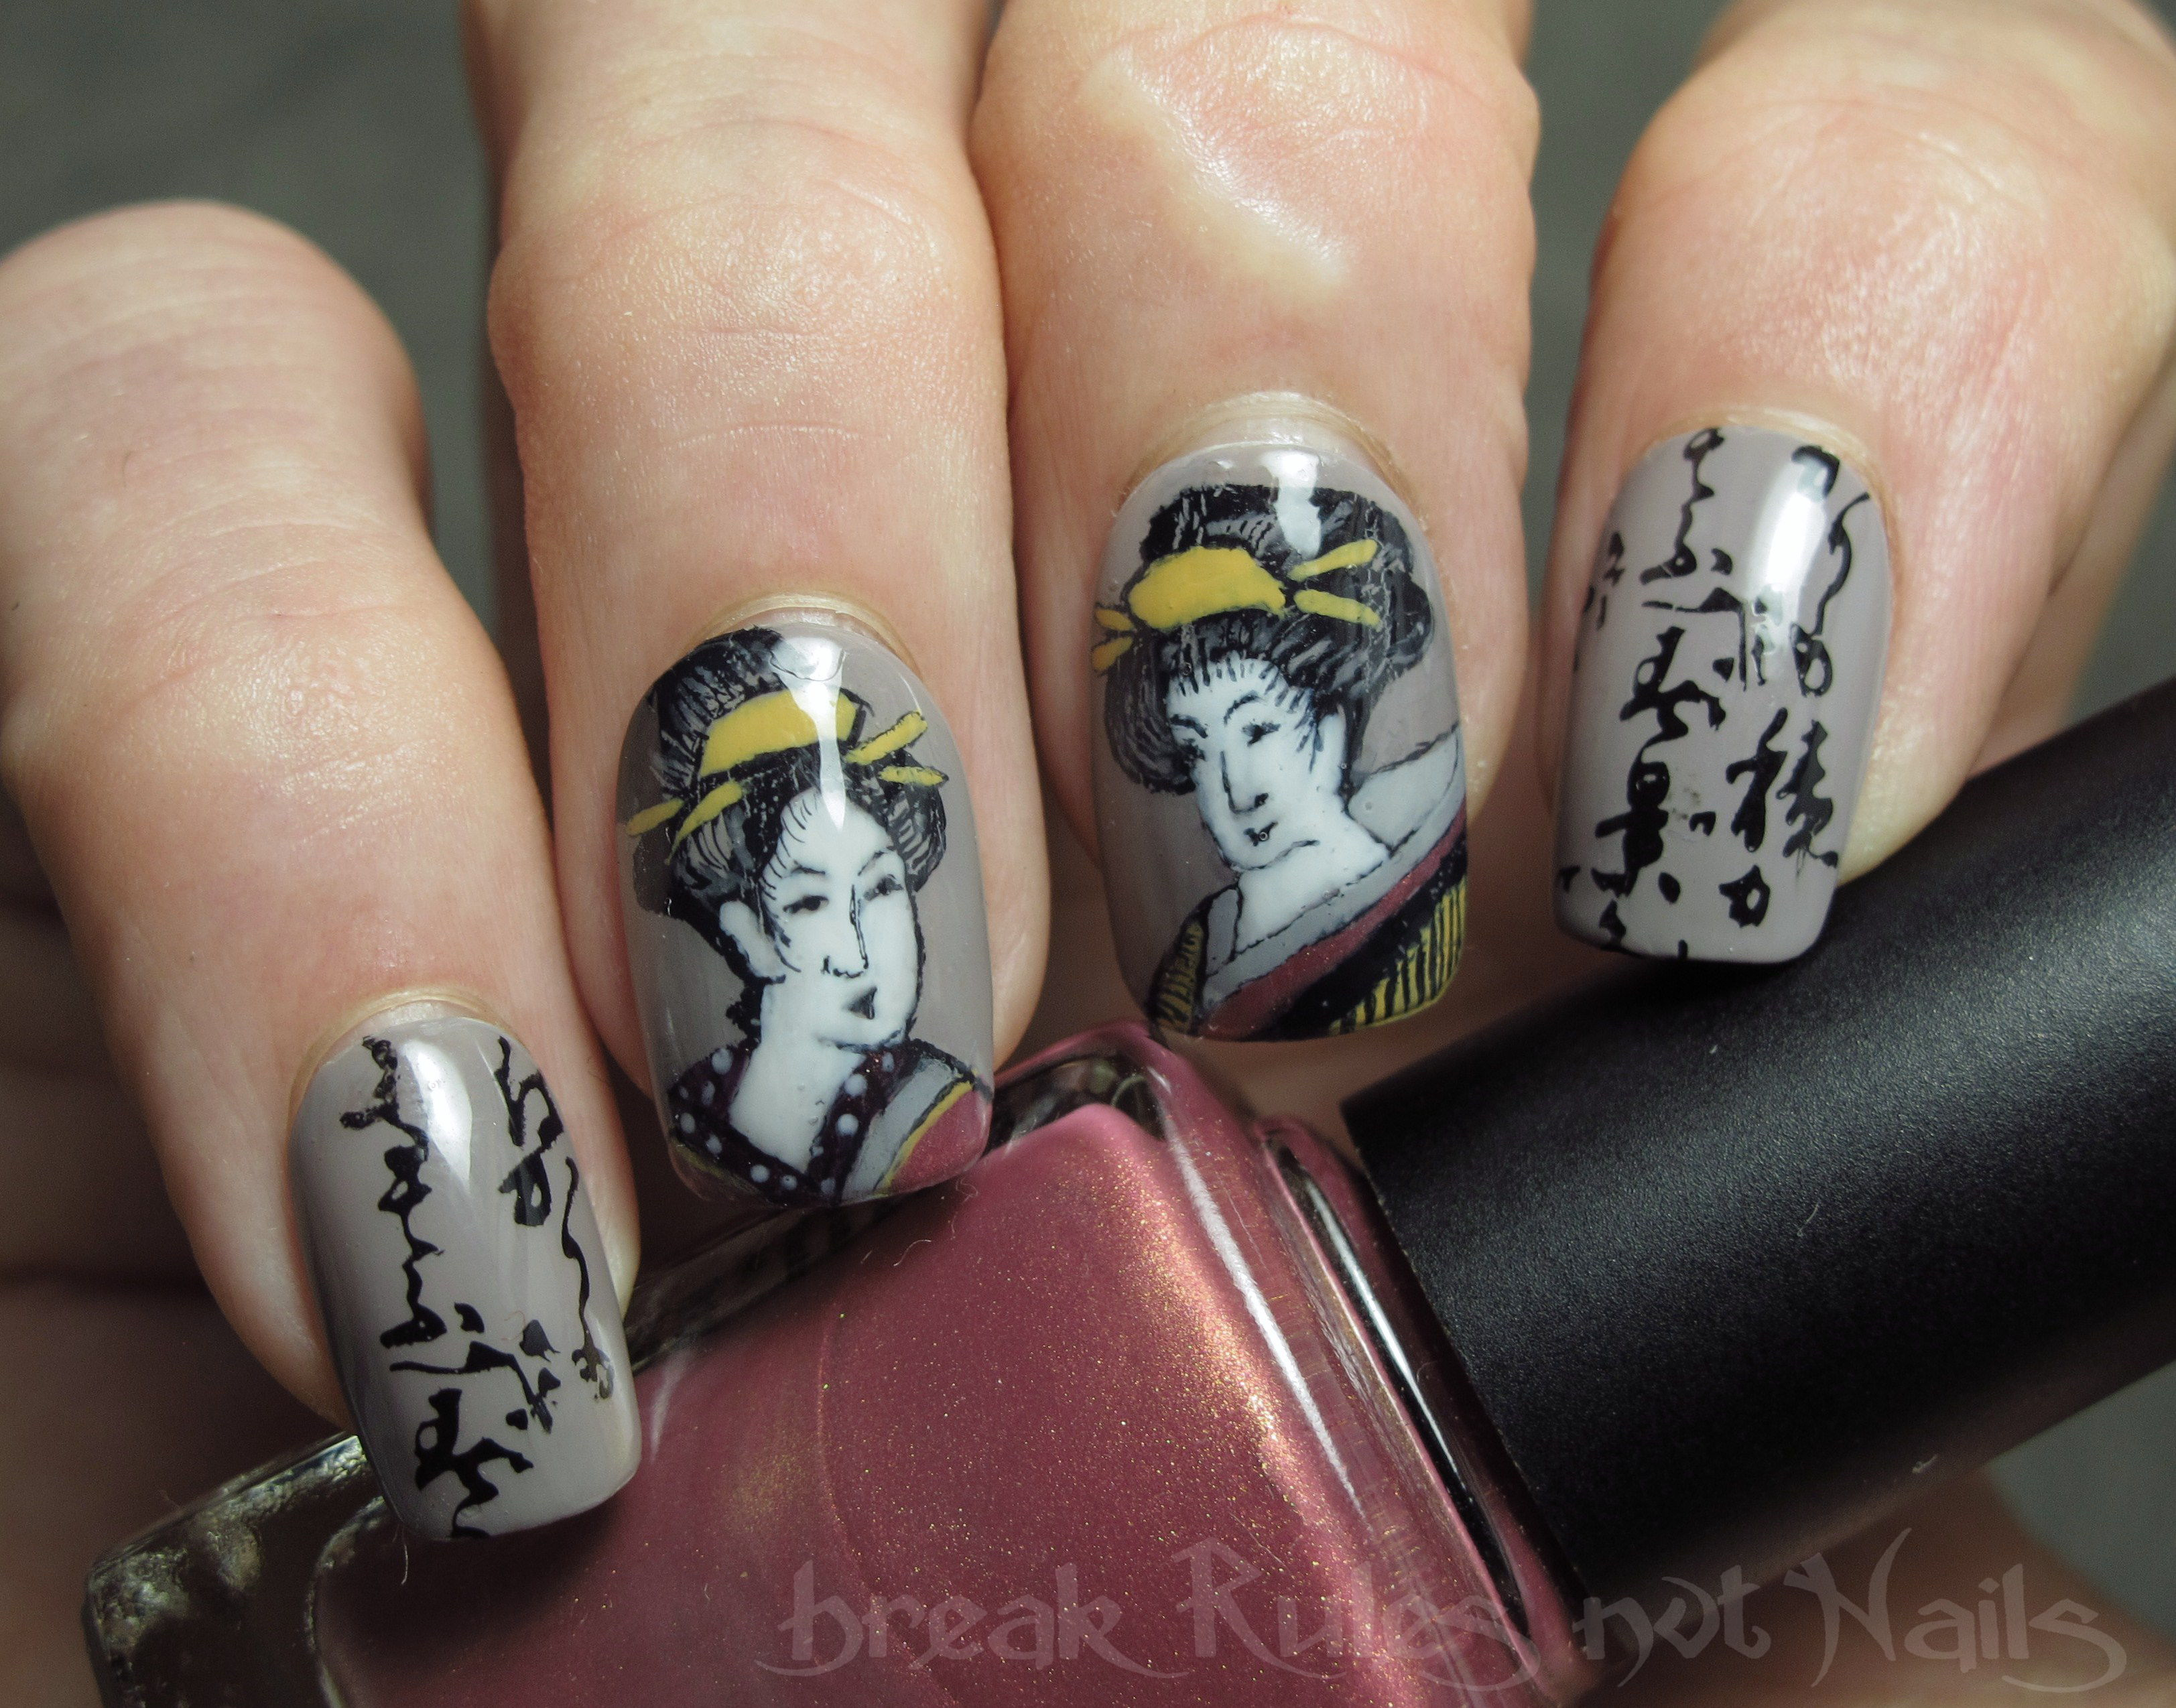 Japanese nail art | Break rules, not nails